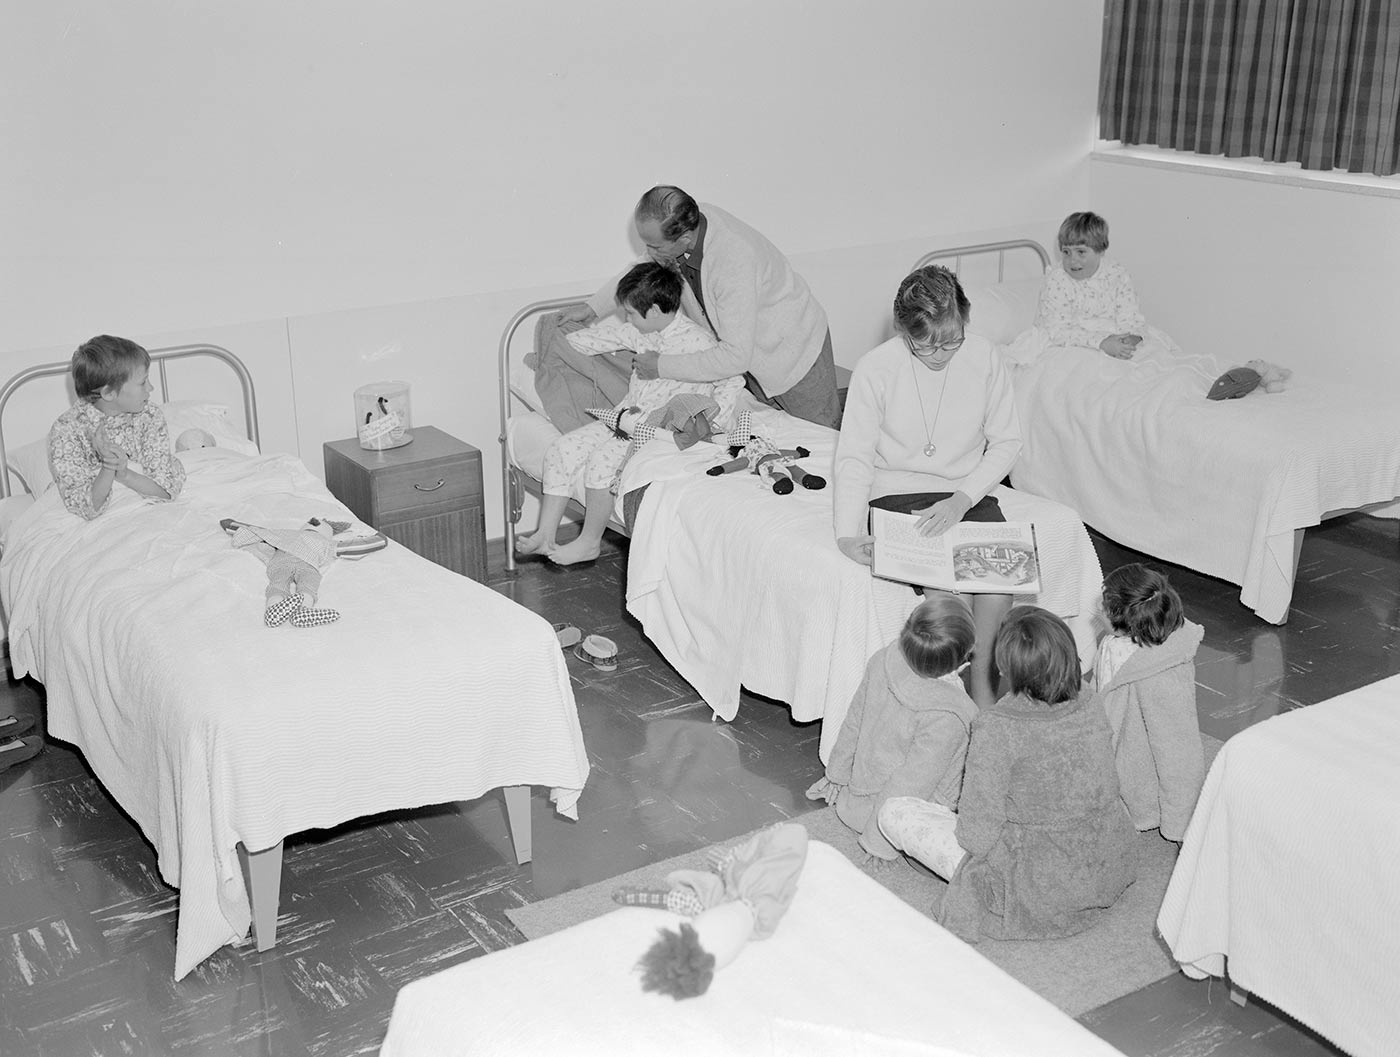 Black and white photograph of a ward with children in beds being attended to by staff. - click to view larger image